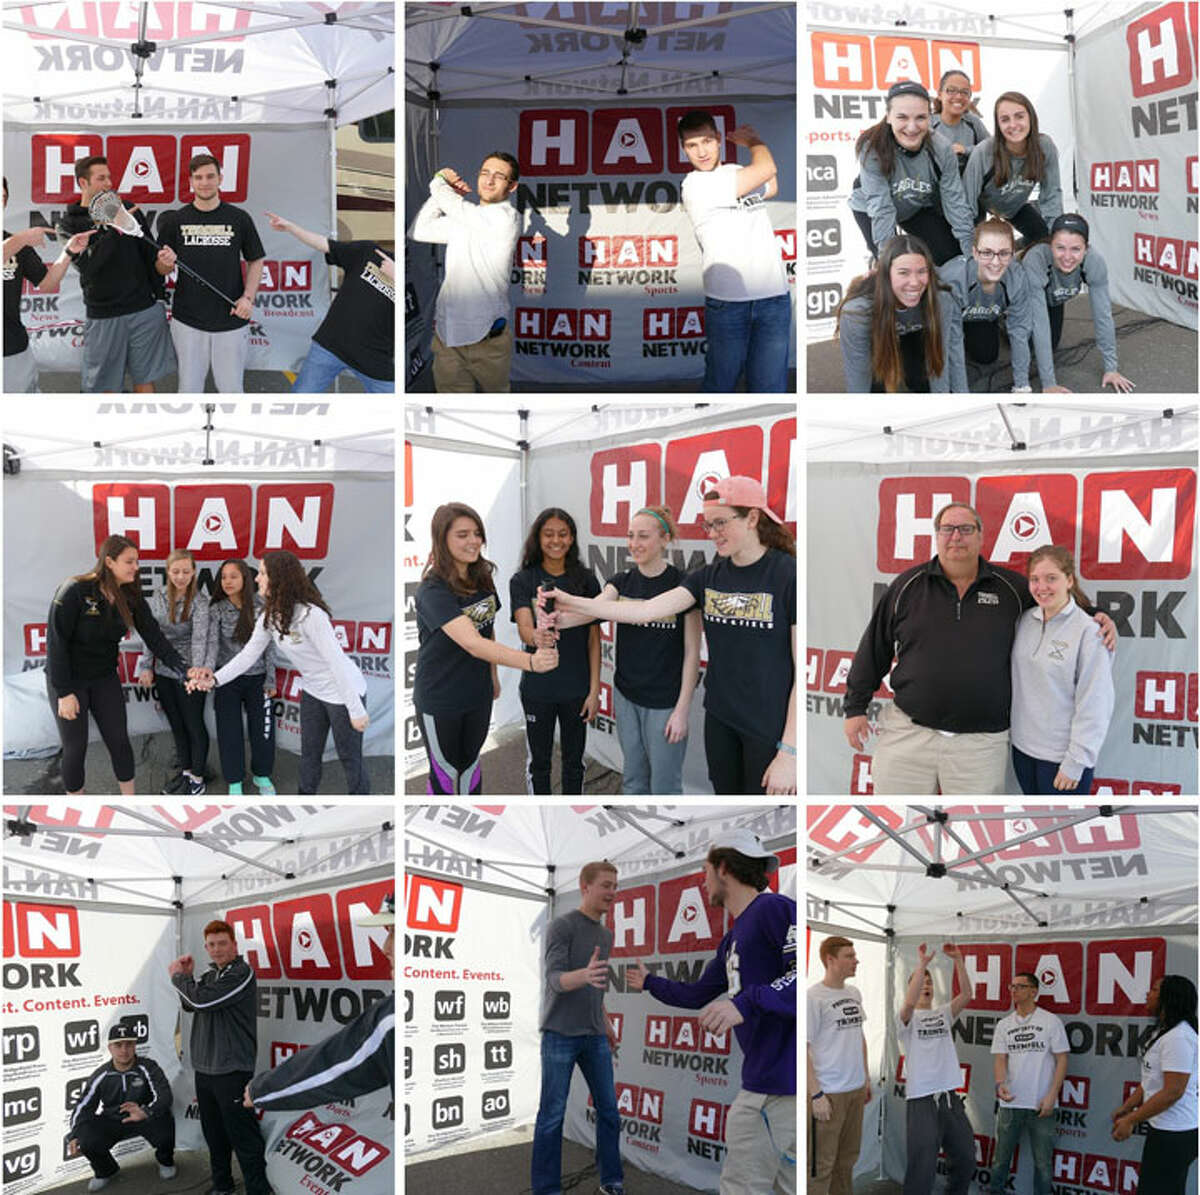 Trumbull High School spring sports captains updated the HAN Network on the outlook for the season when the HAN Cruiser made one of 17 stops on the FCIAC Spring Sports Tour.